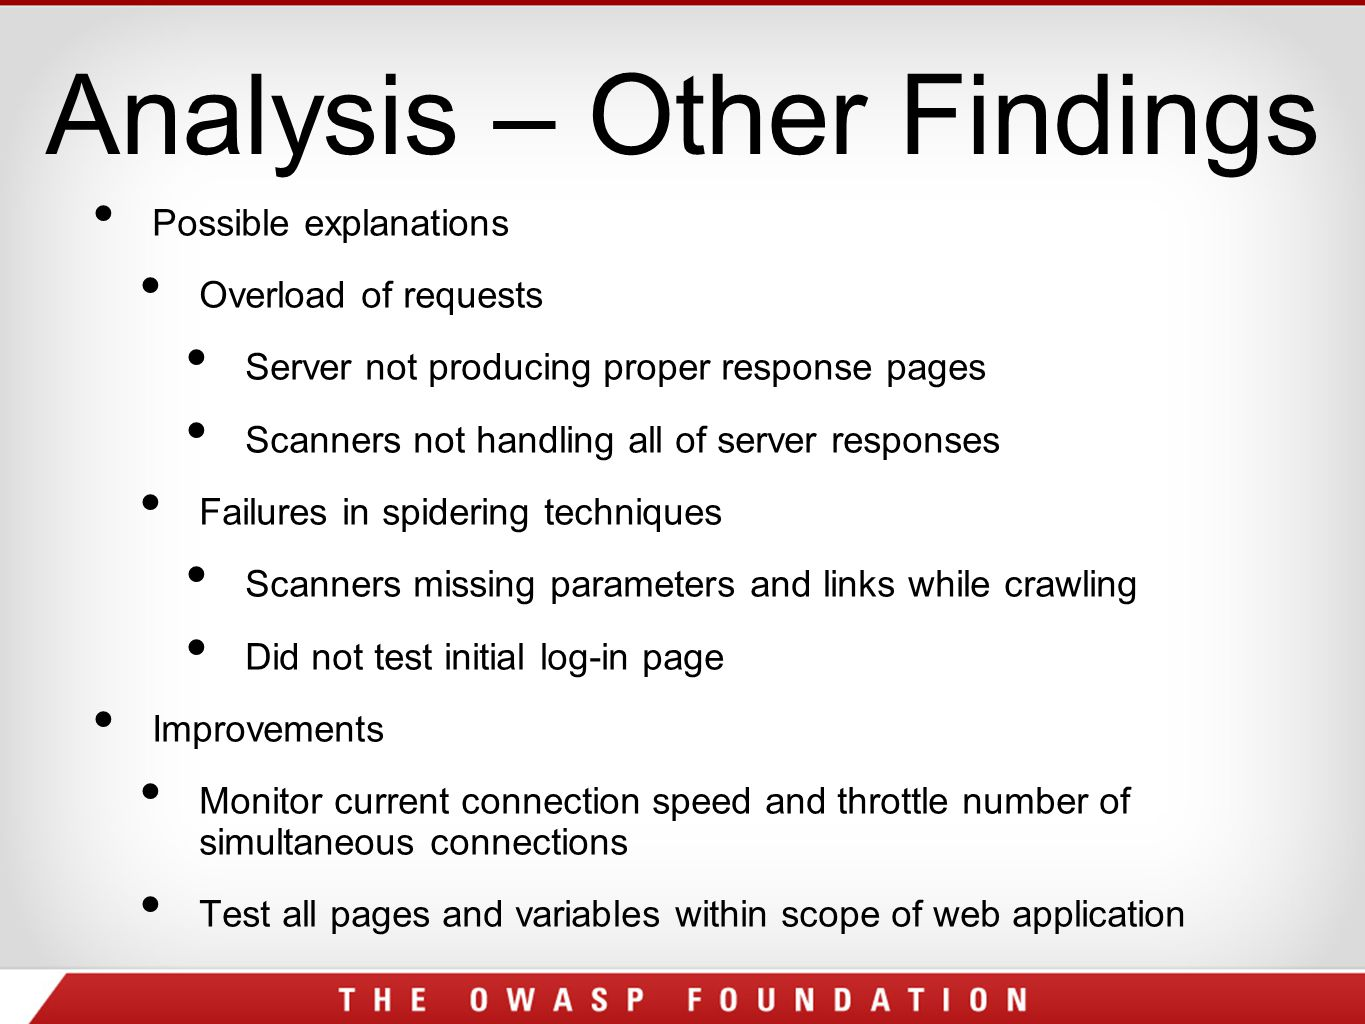 Analysis – Other Findings Possible explanations Overload of requests Server not producing proper response pages Scanners not handling all of server responses Failures in spidering techniques Scanners missing parameters and links while crawling Did not test initial log-in page Improvements Monitor current connection speed and throttle number of simultaneous connections Test all pages and variables within scope of web application